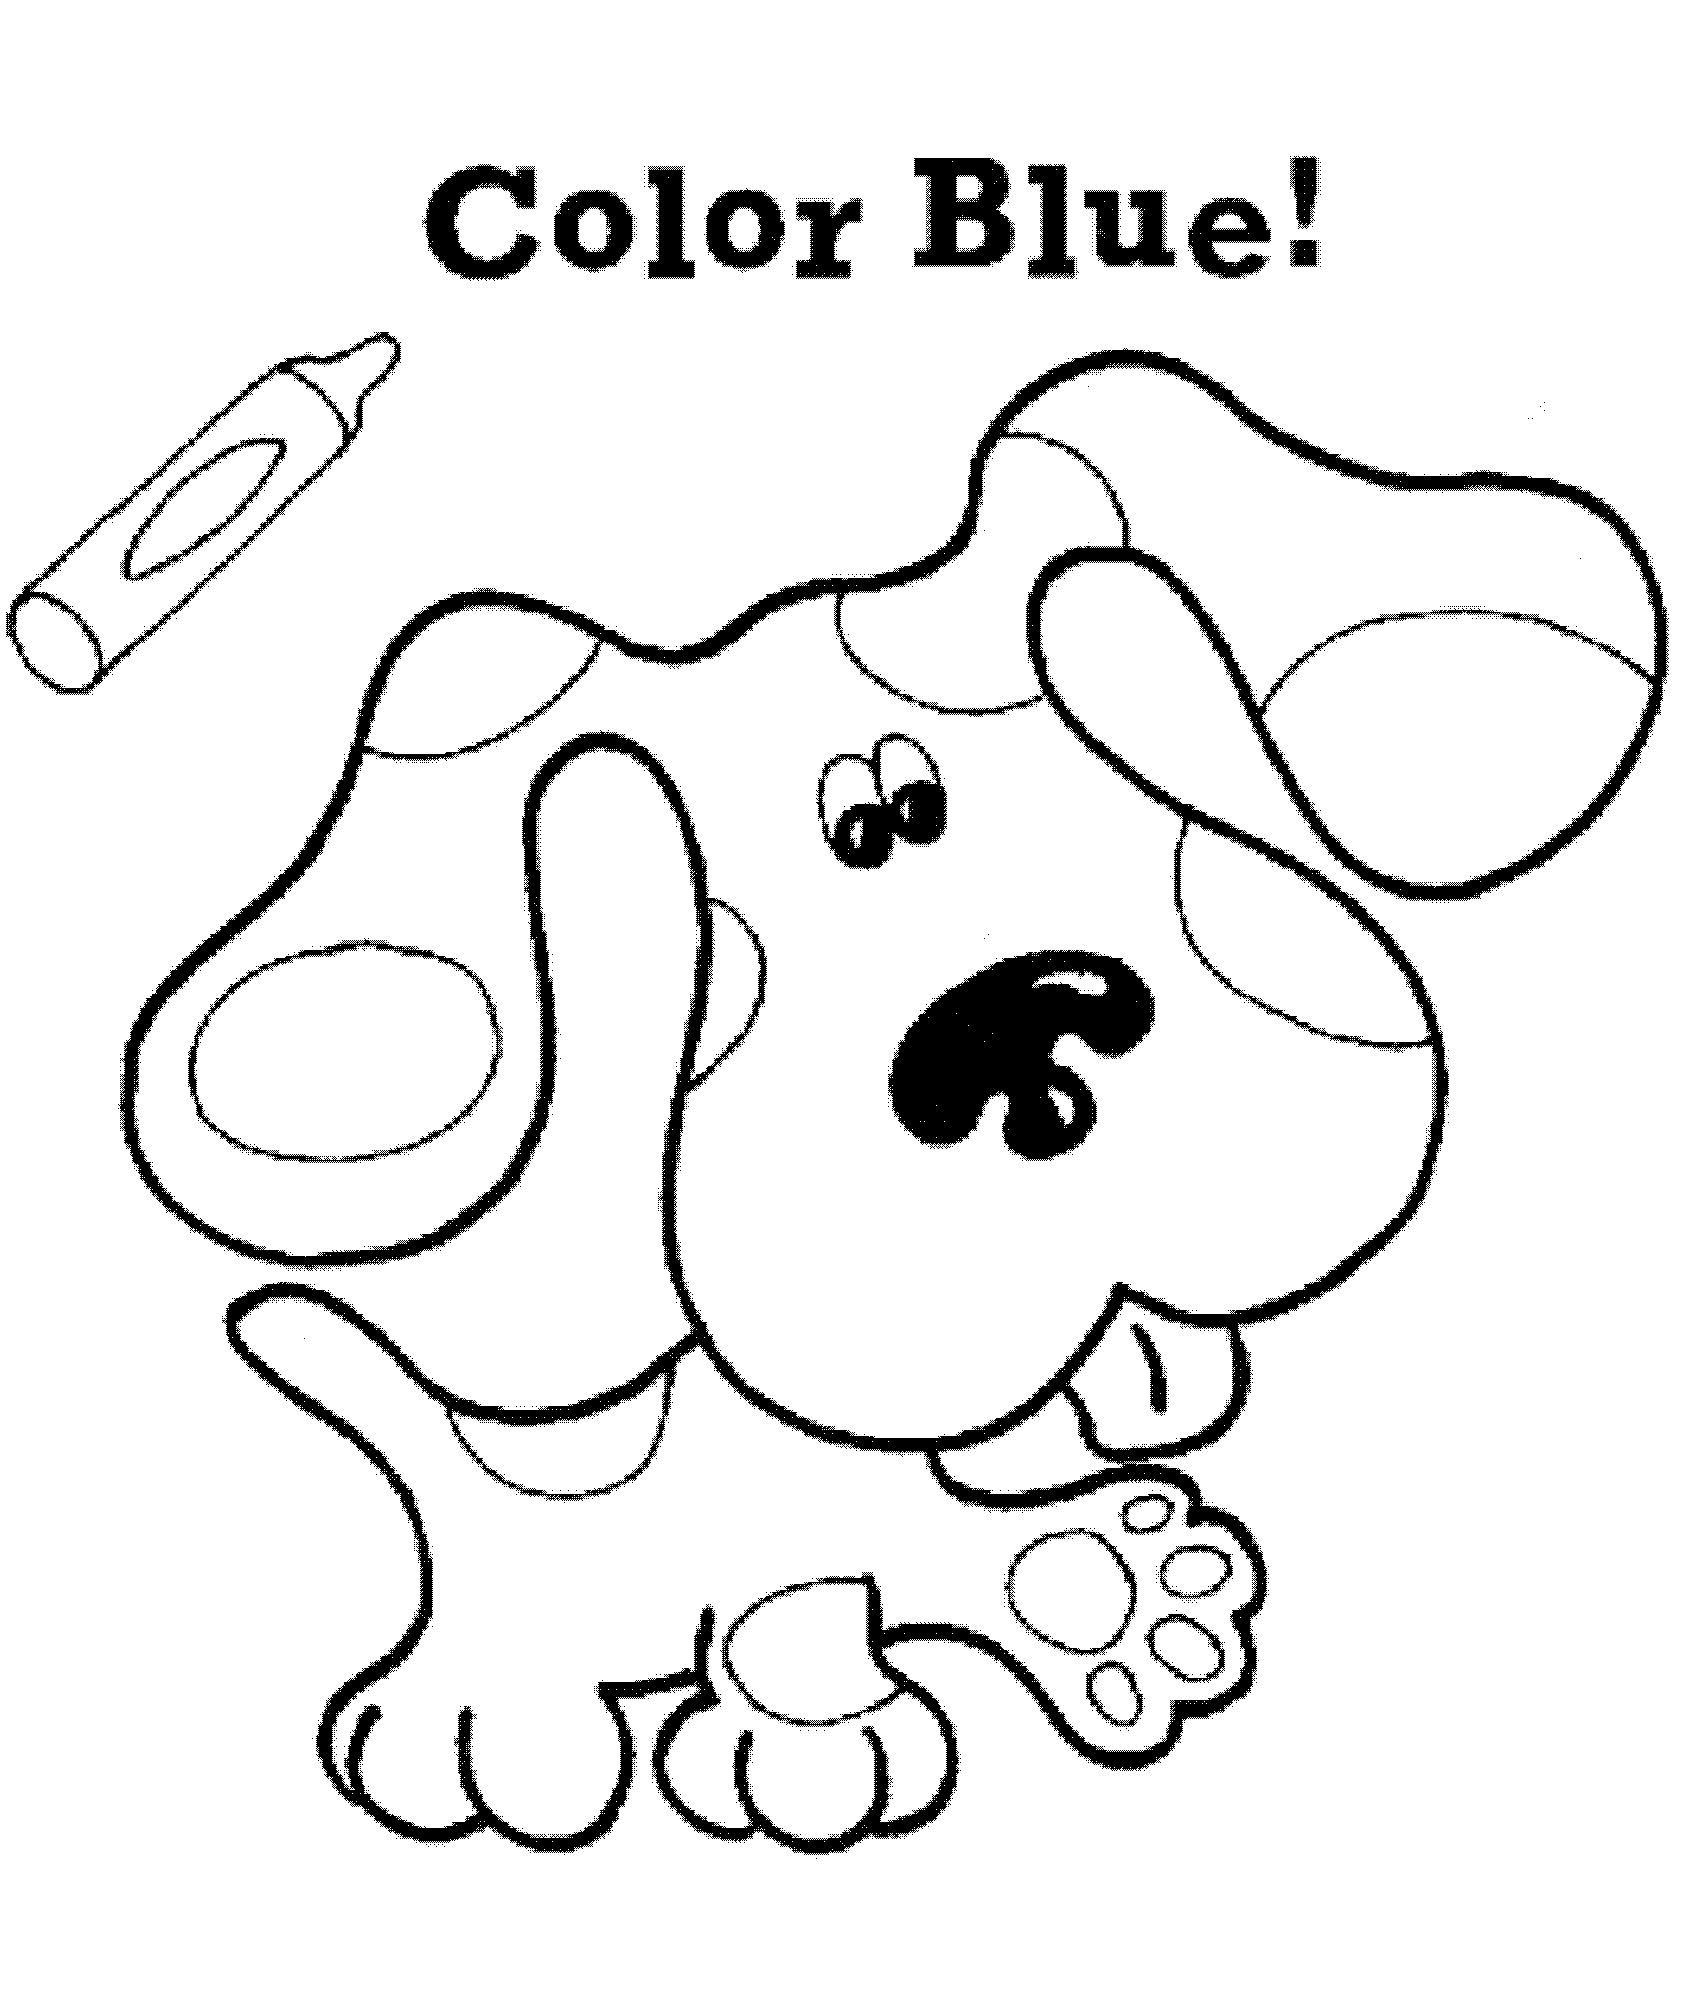 blues clues coloring pages notebook - photo#7